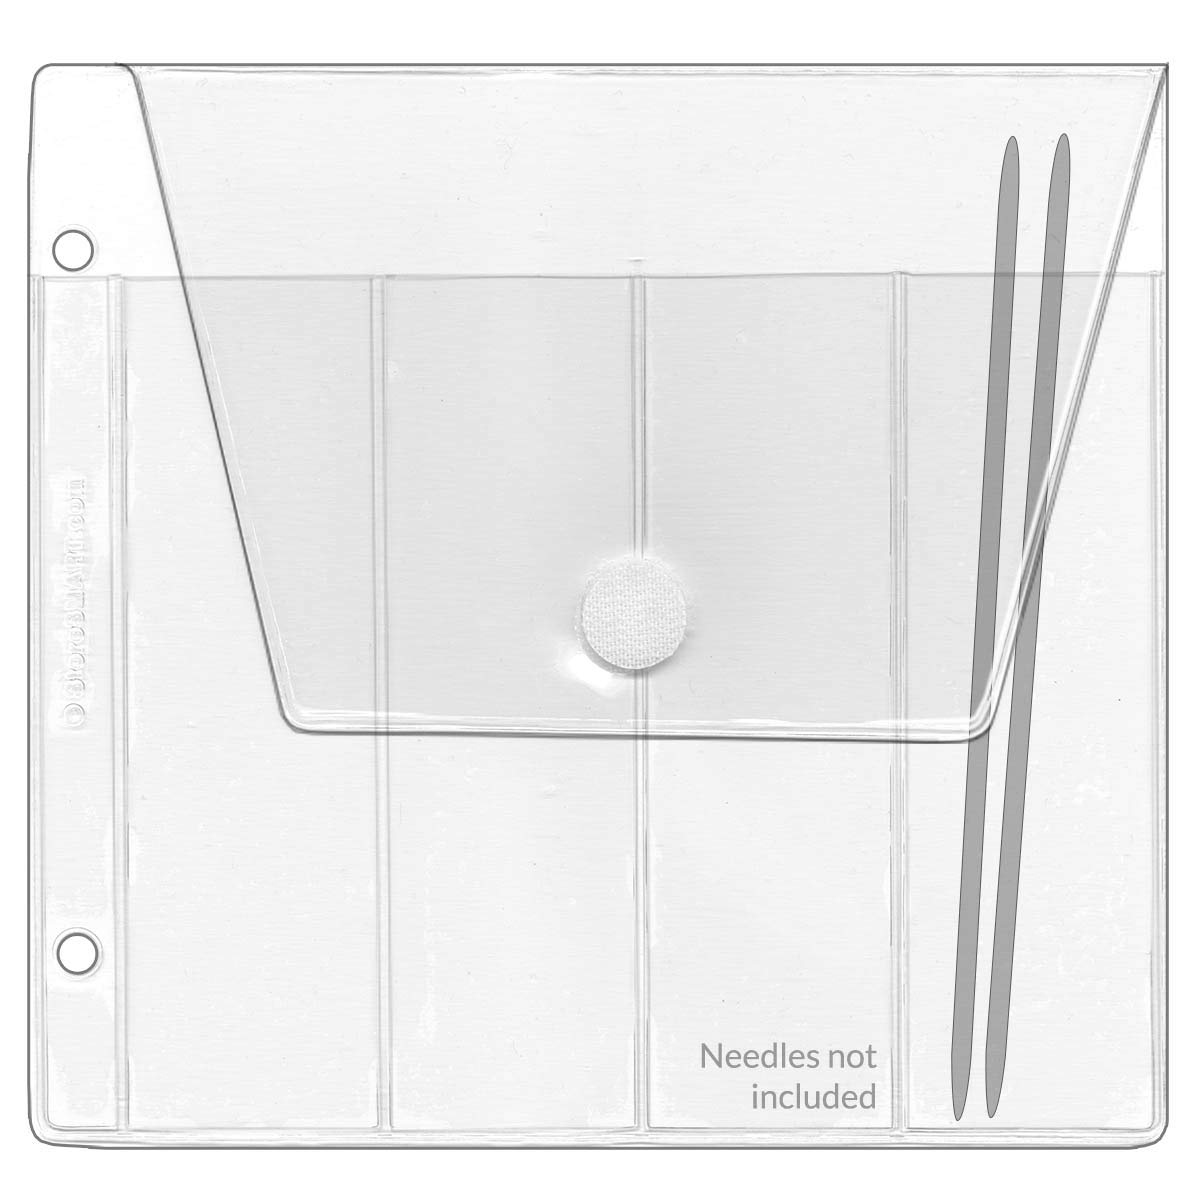 StoreSMART 10-Pack 6 Double Pointed Needles Binder Page with Flap and Hook /& Loop Closure DP4256-10